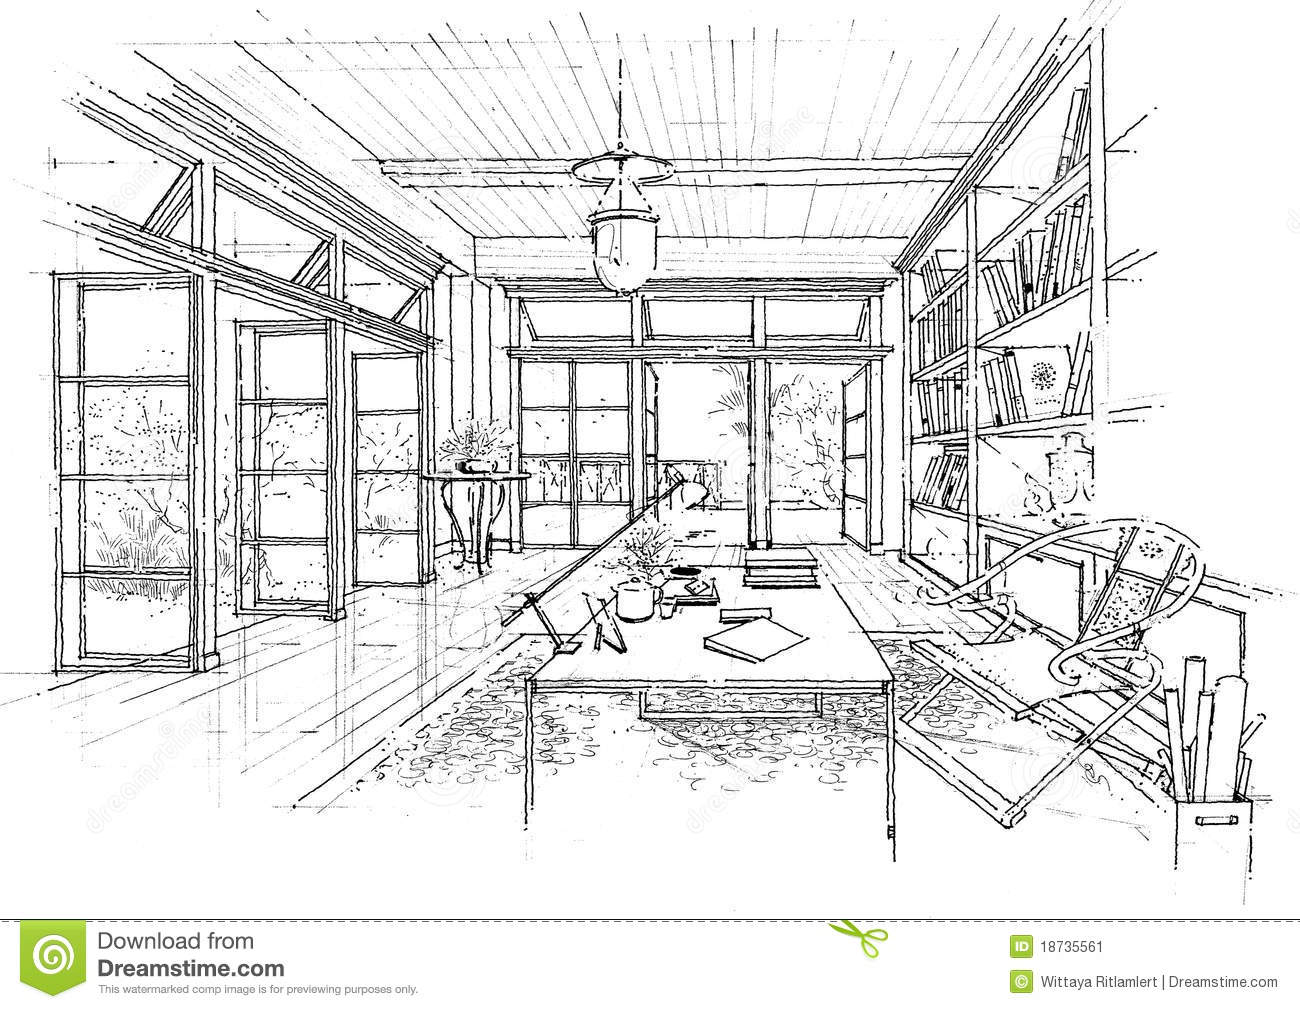 Interior architecture construction landscape sketc stock for Interior designs drawings